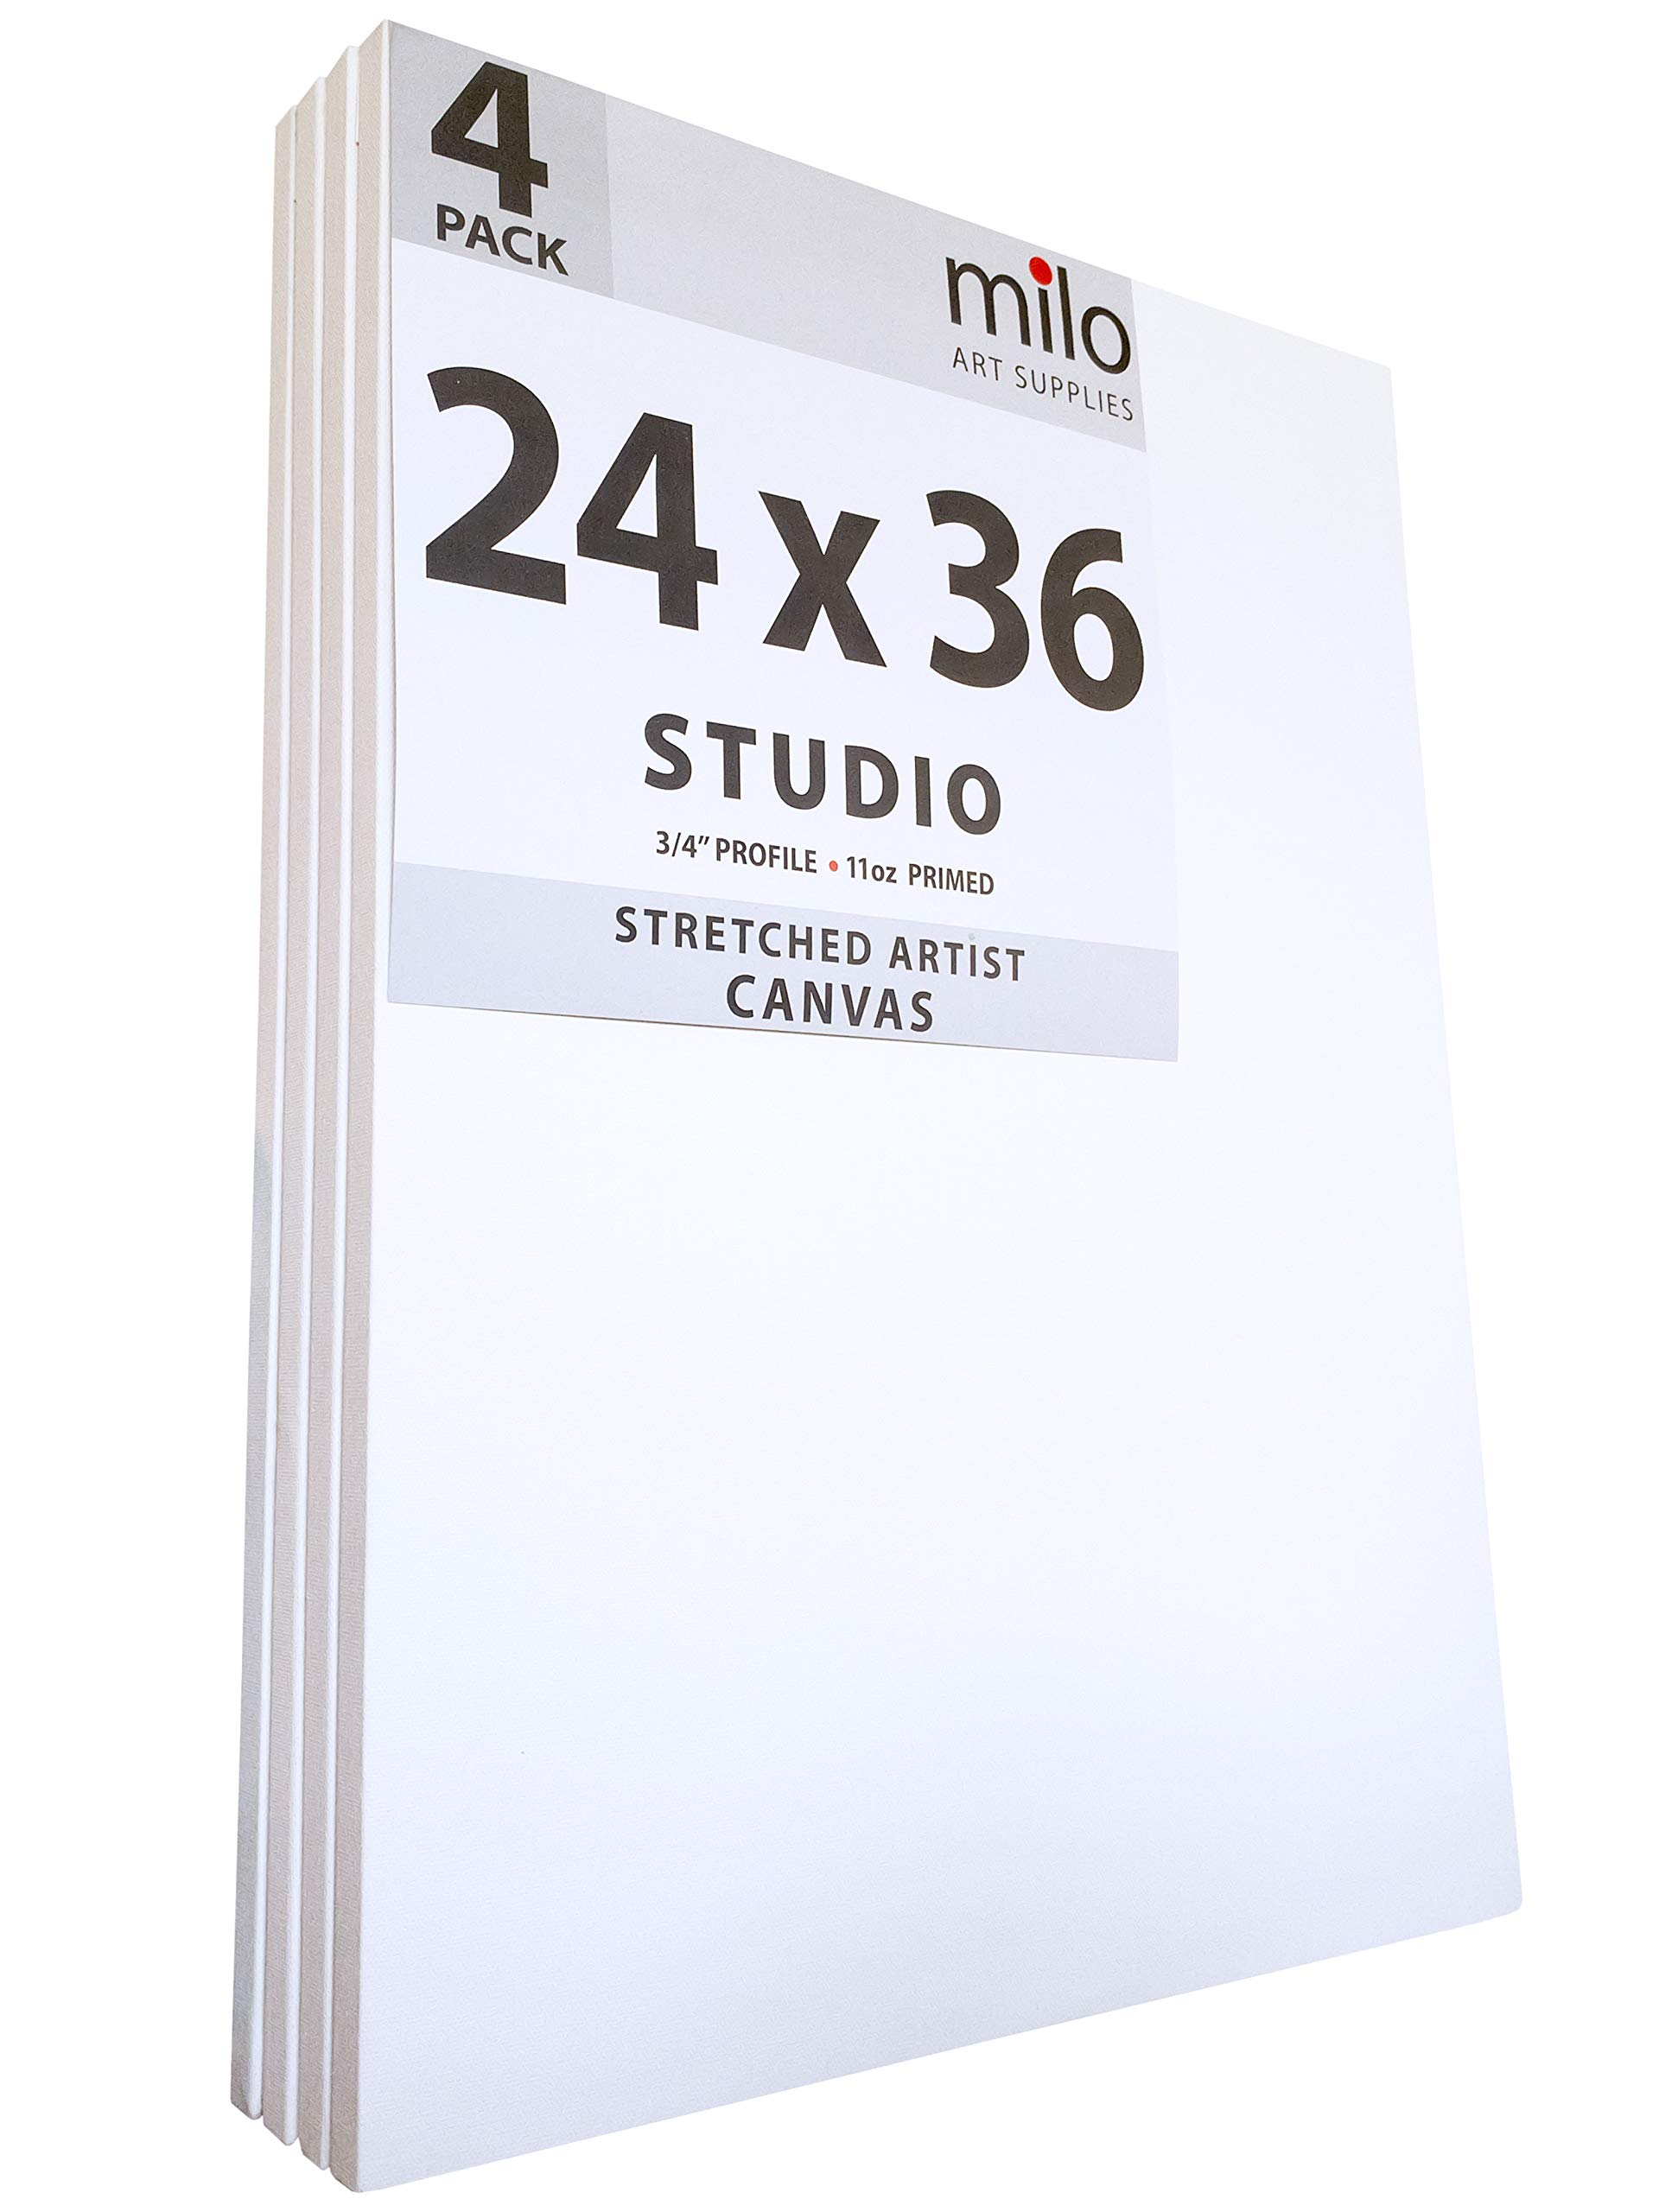 MILO PRO | 24 x 36'' Stretched Canvas Pack of 4 | 3/4'' inch Studio Profile | 11 oz Primed Large Professional Artist Painting Canvases | Ready to Paint White Blank Art Canvas Bulk Set by milo